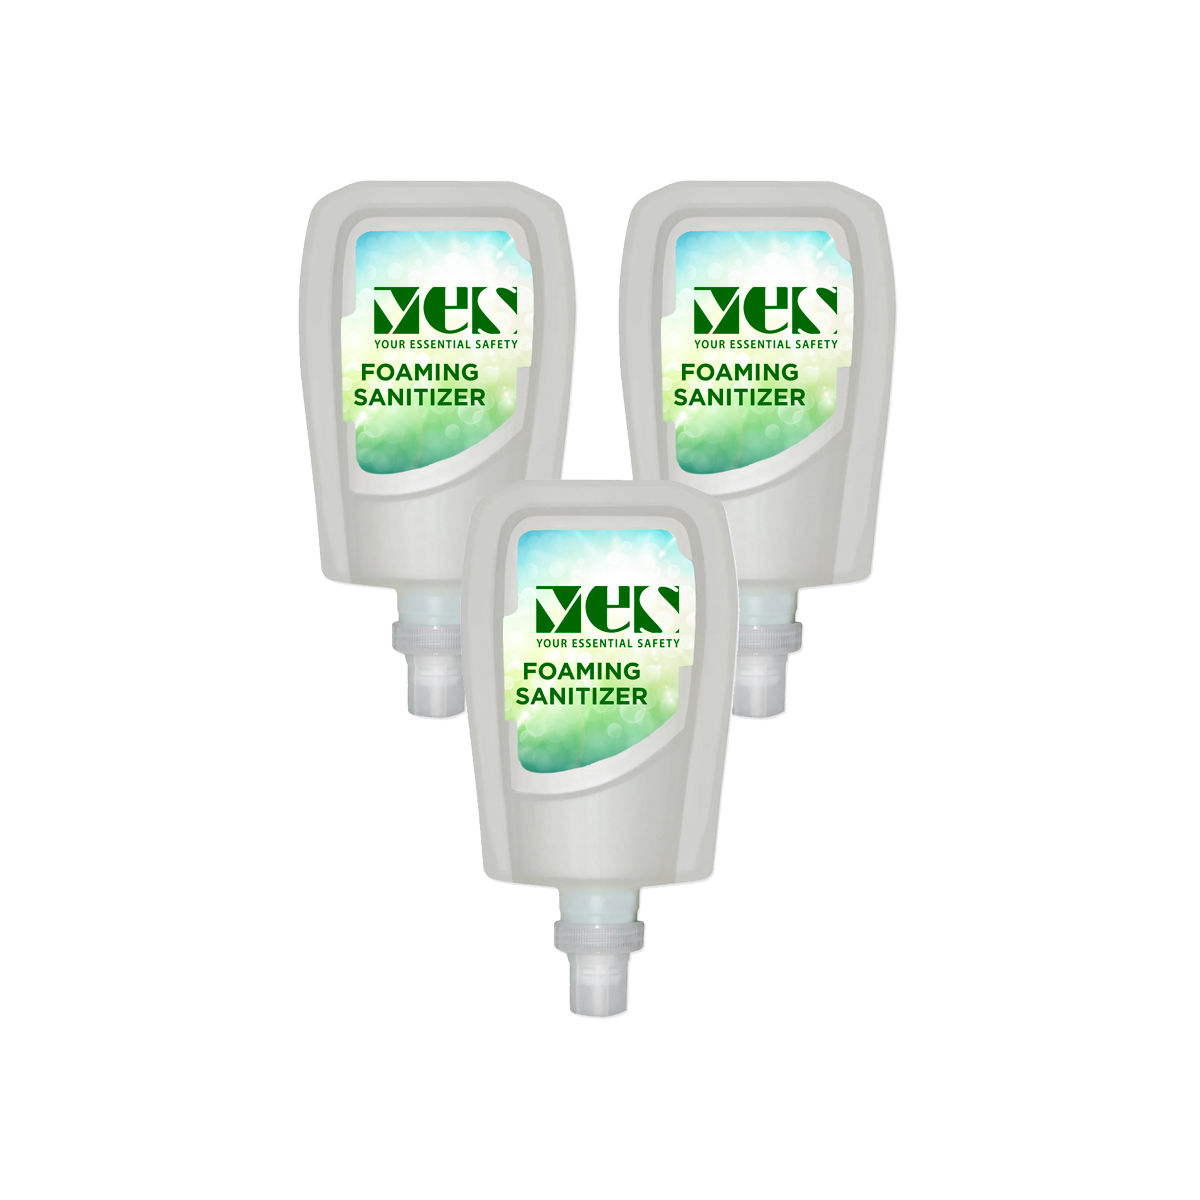 Foaming Sanitizer Refill Cartridges — sold as a 3-pack